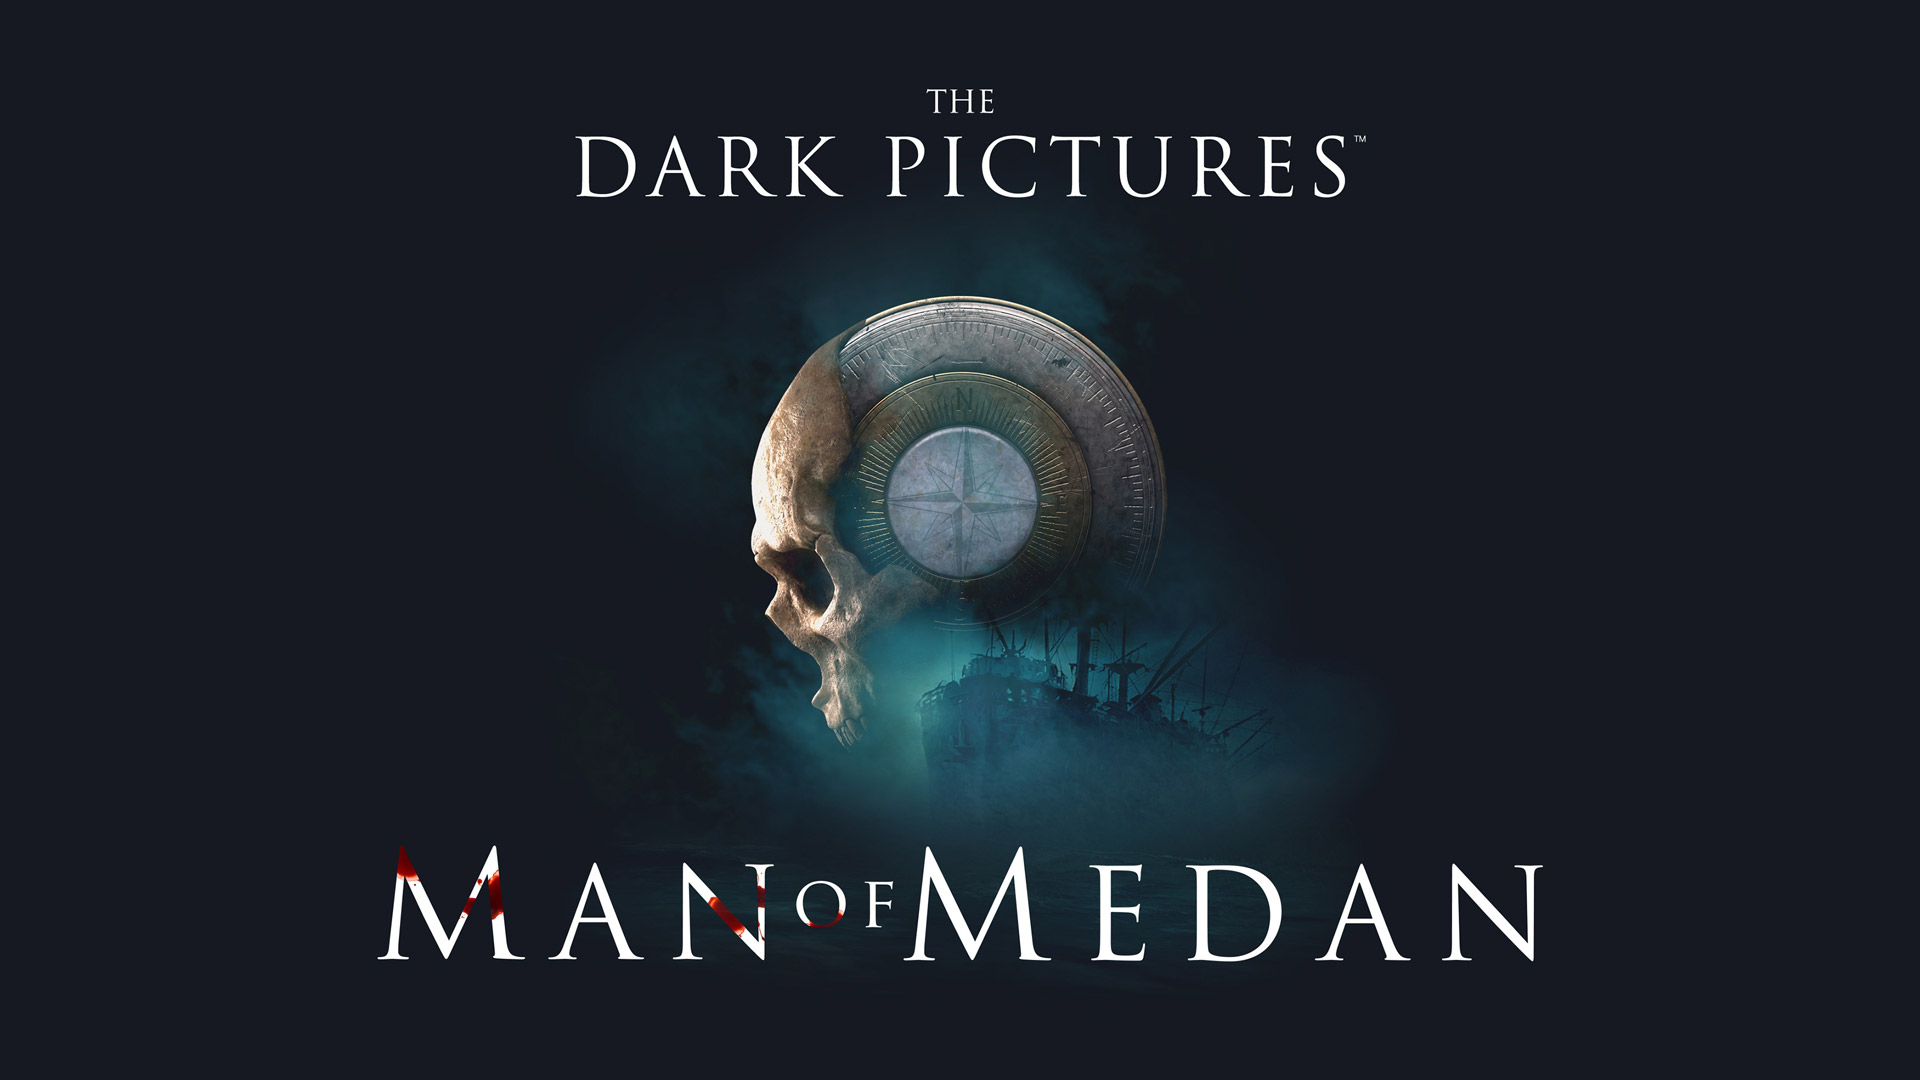 Free The Dark Pictures - Man of Medan Wallpaper in 1920x1080